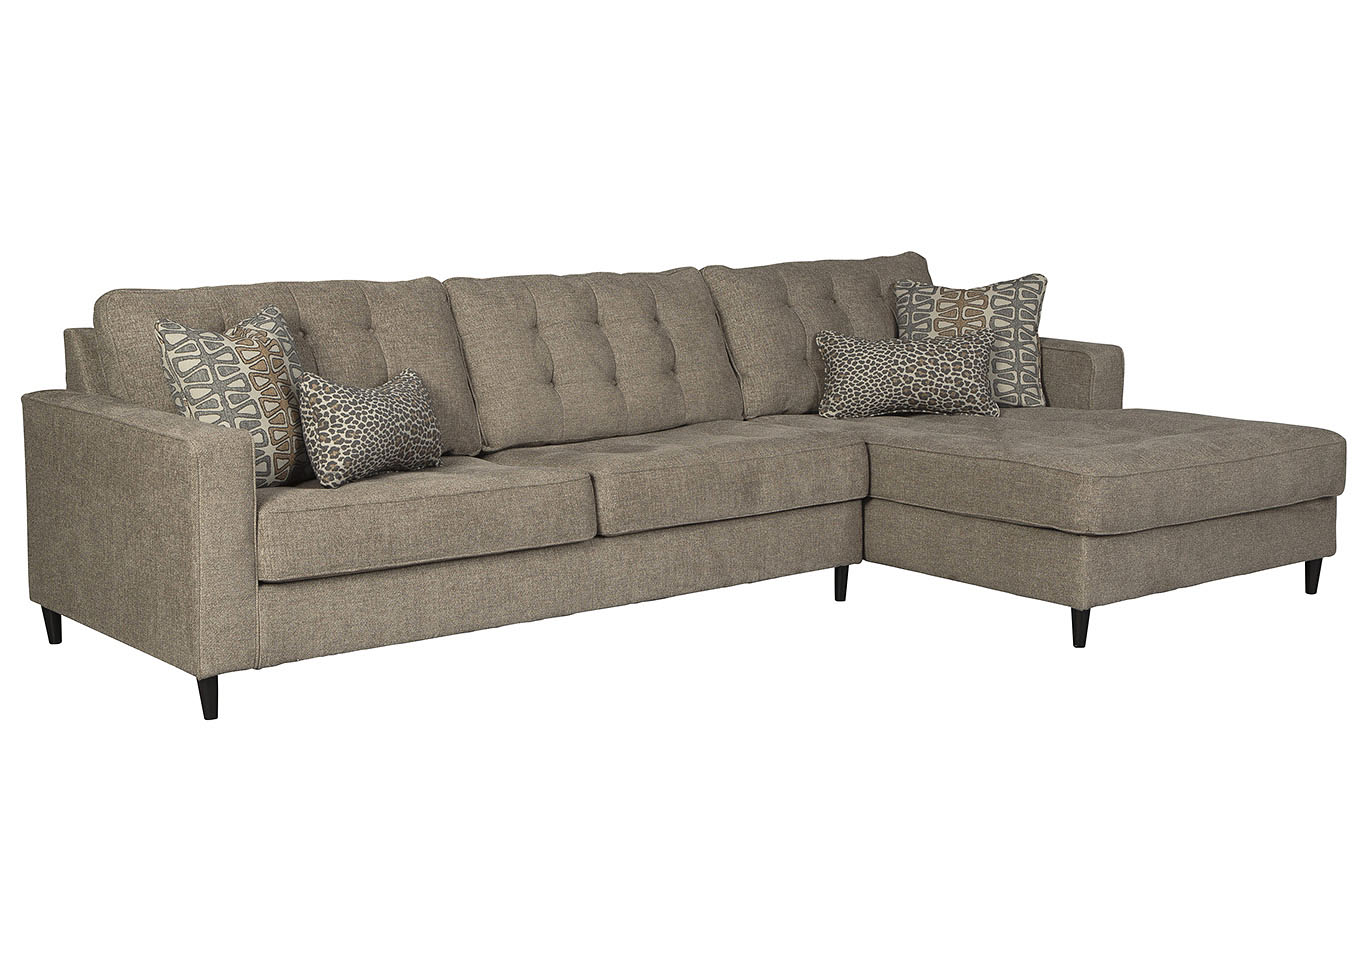 Flintshire Brown Right-Arm Facing Chaise Sectional,Signature Design By Ashley